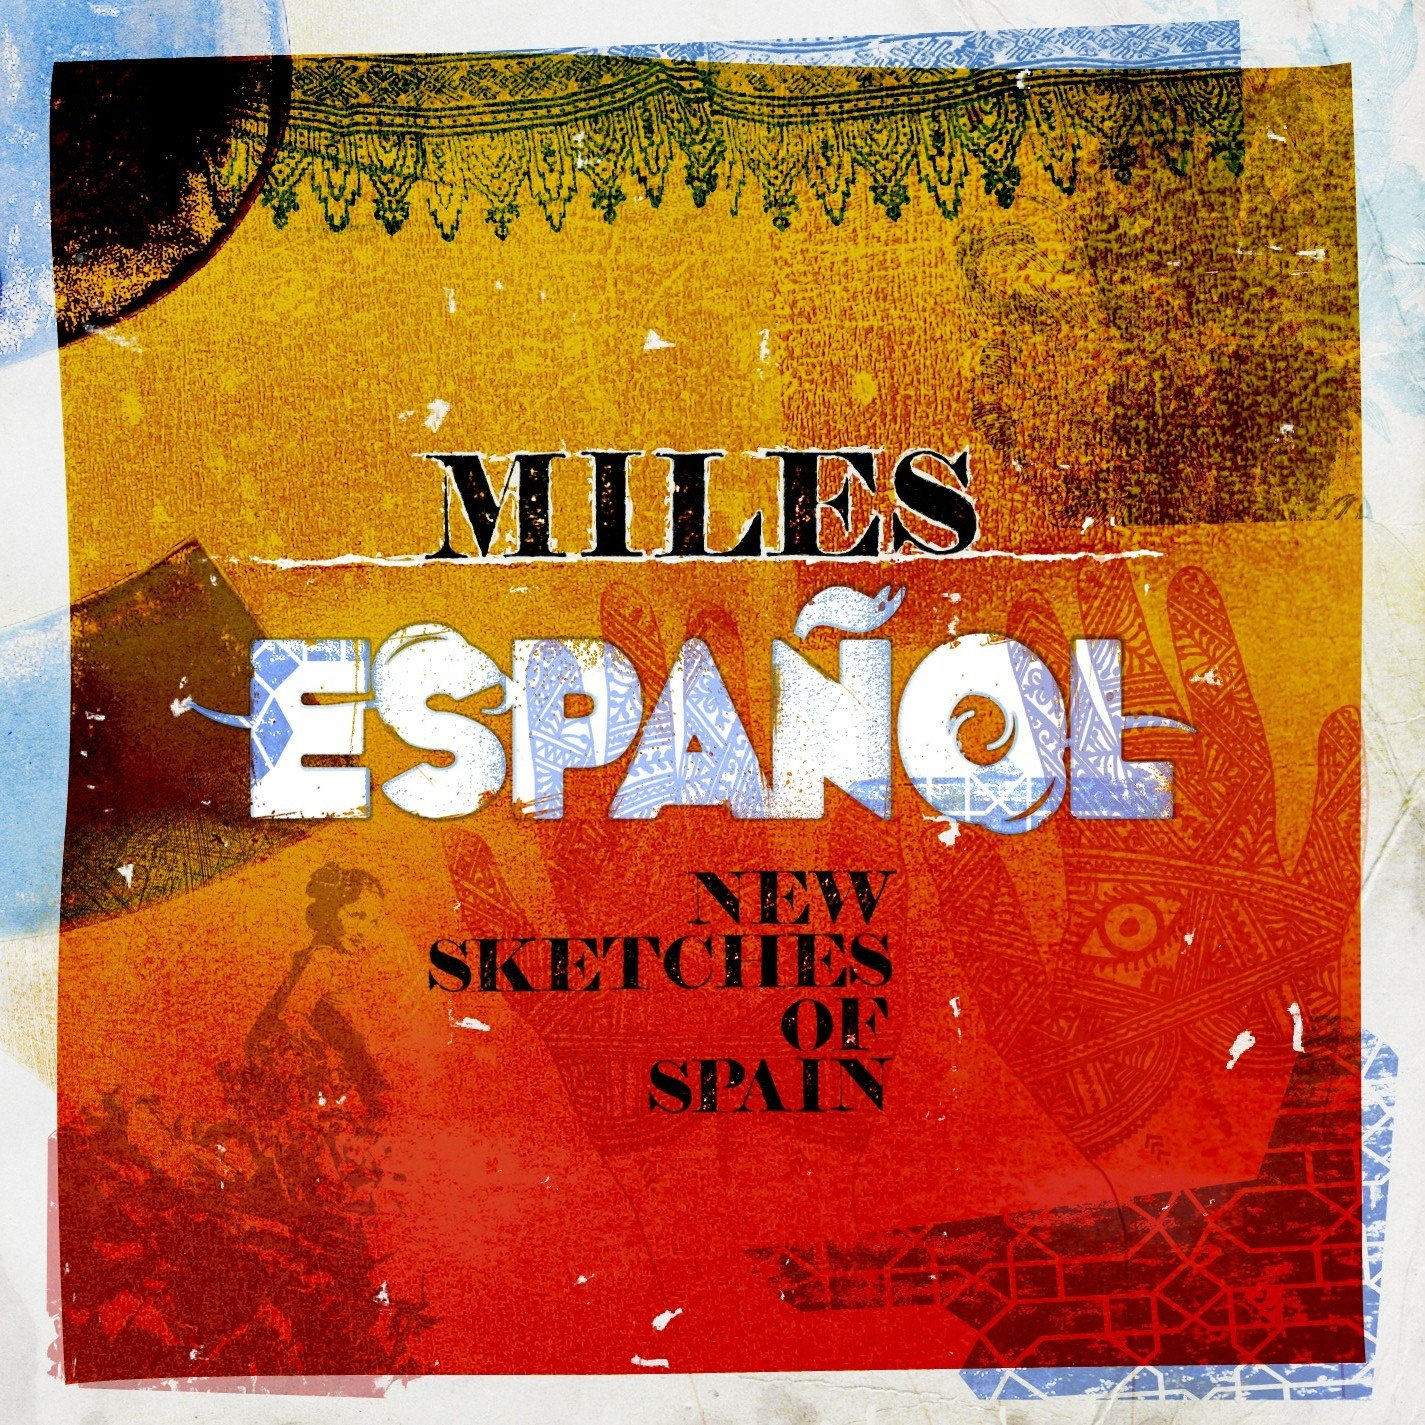 All items in the Inexpensive store Miles Espanol